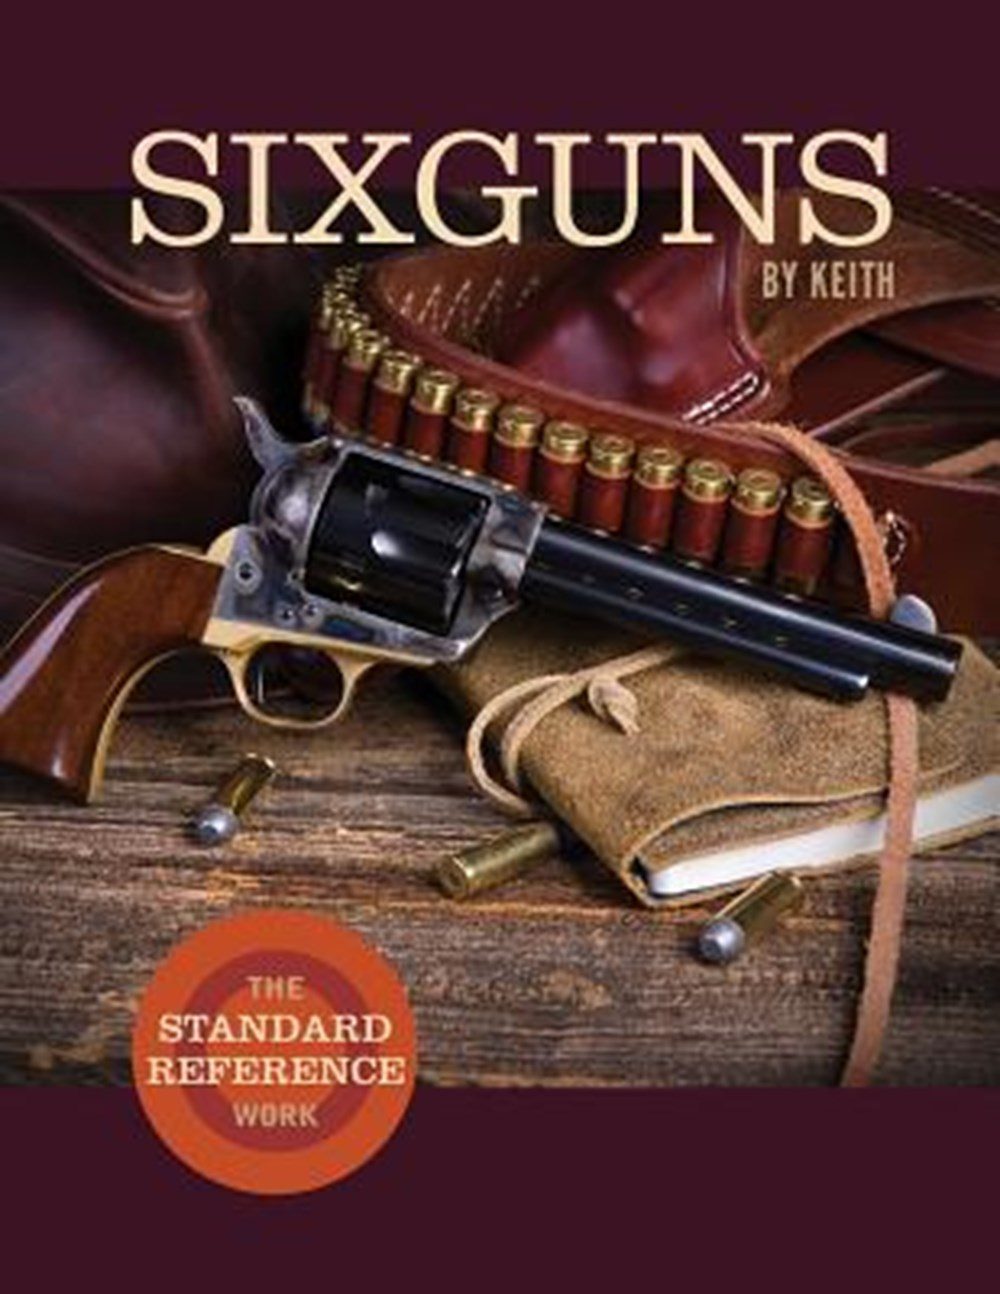 Sixguns by Keith The Standard Reference Work